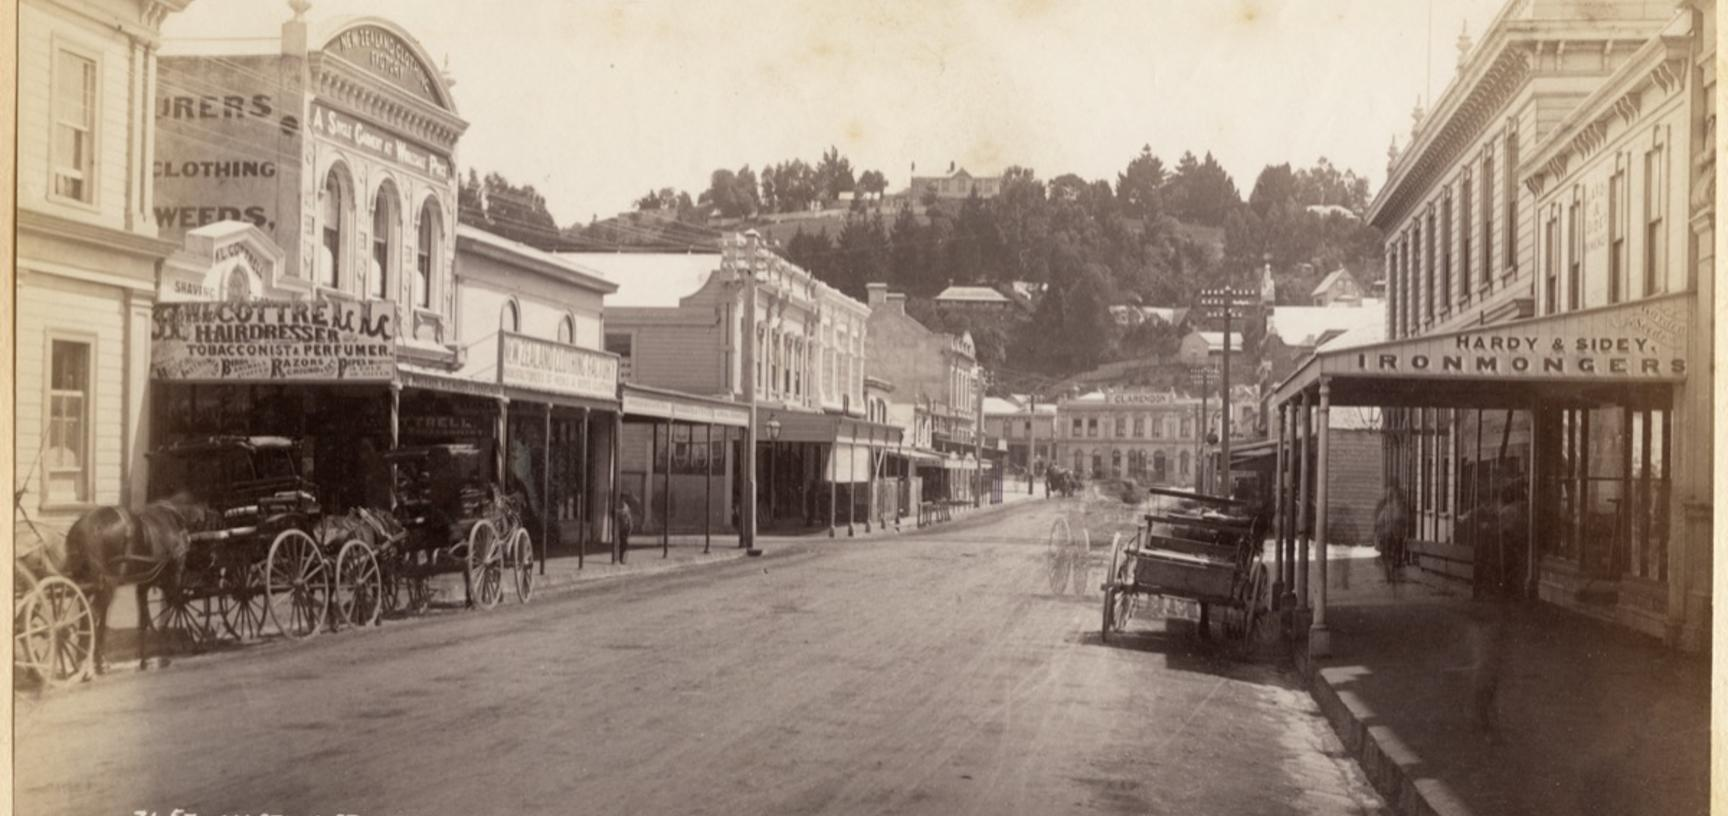 Horse-drawn vehicles stationed outside buildings on Hastings Street in Napier. Photograph by Alfred Burton for the Burton Brothers (Dunedin). Napier, North Island, New Zealand. Circa 1885. (Copyright Pitt Rivers Museum, University of Oxford. Accession Num